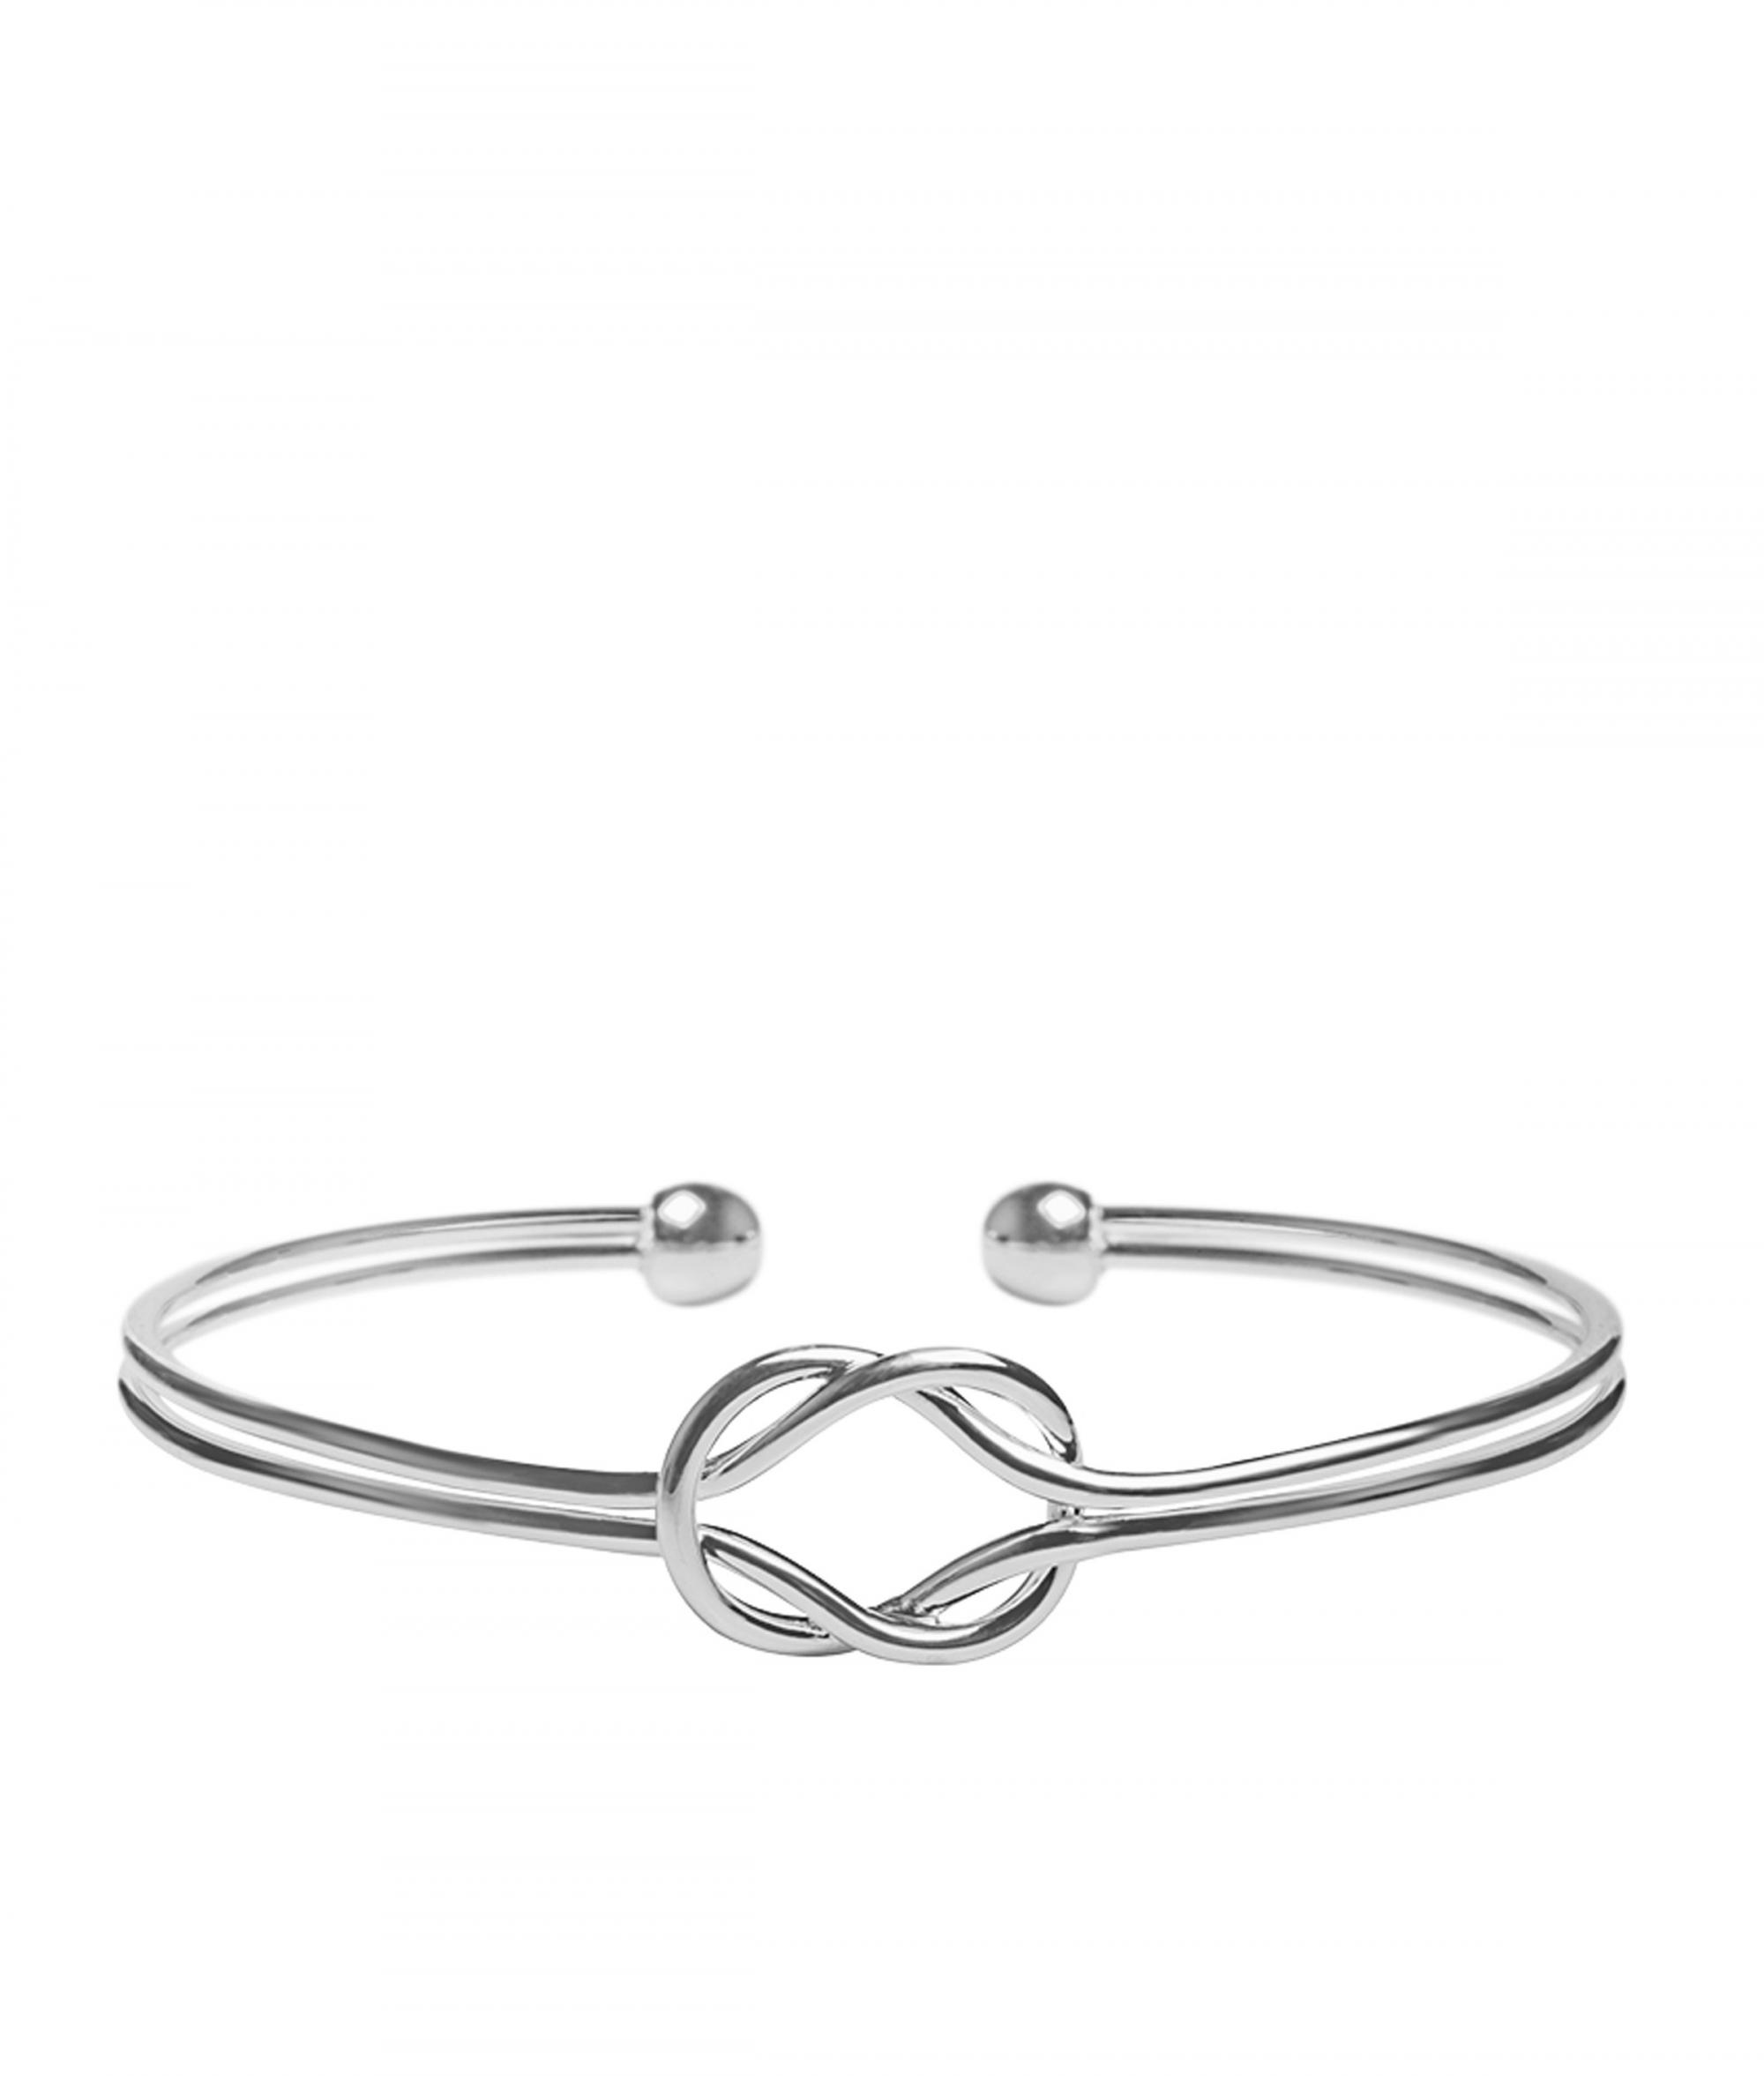 everyday web products closed shop bangles bangle sun